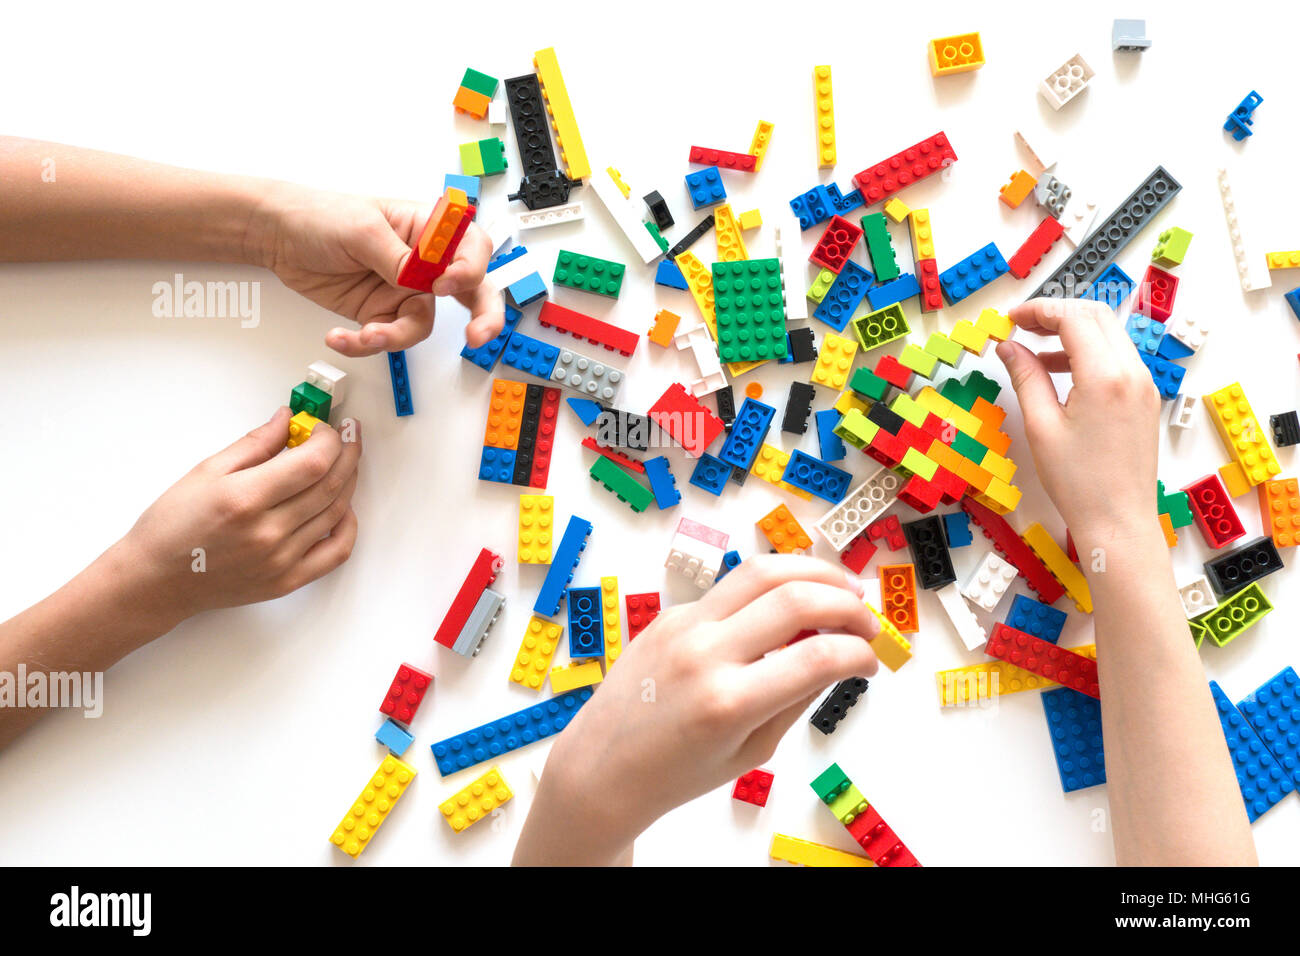 Children Hands Play With Colorful Lego Blocks On White Table